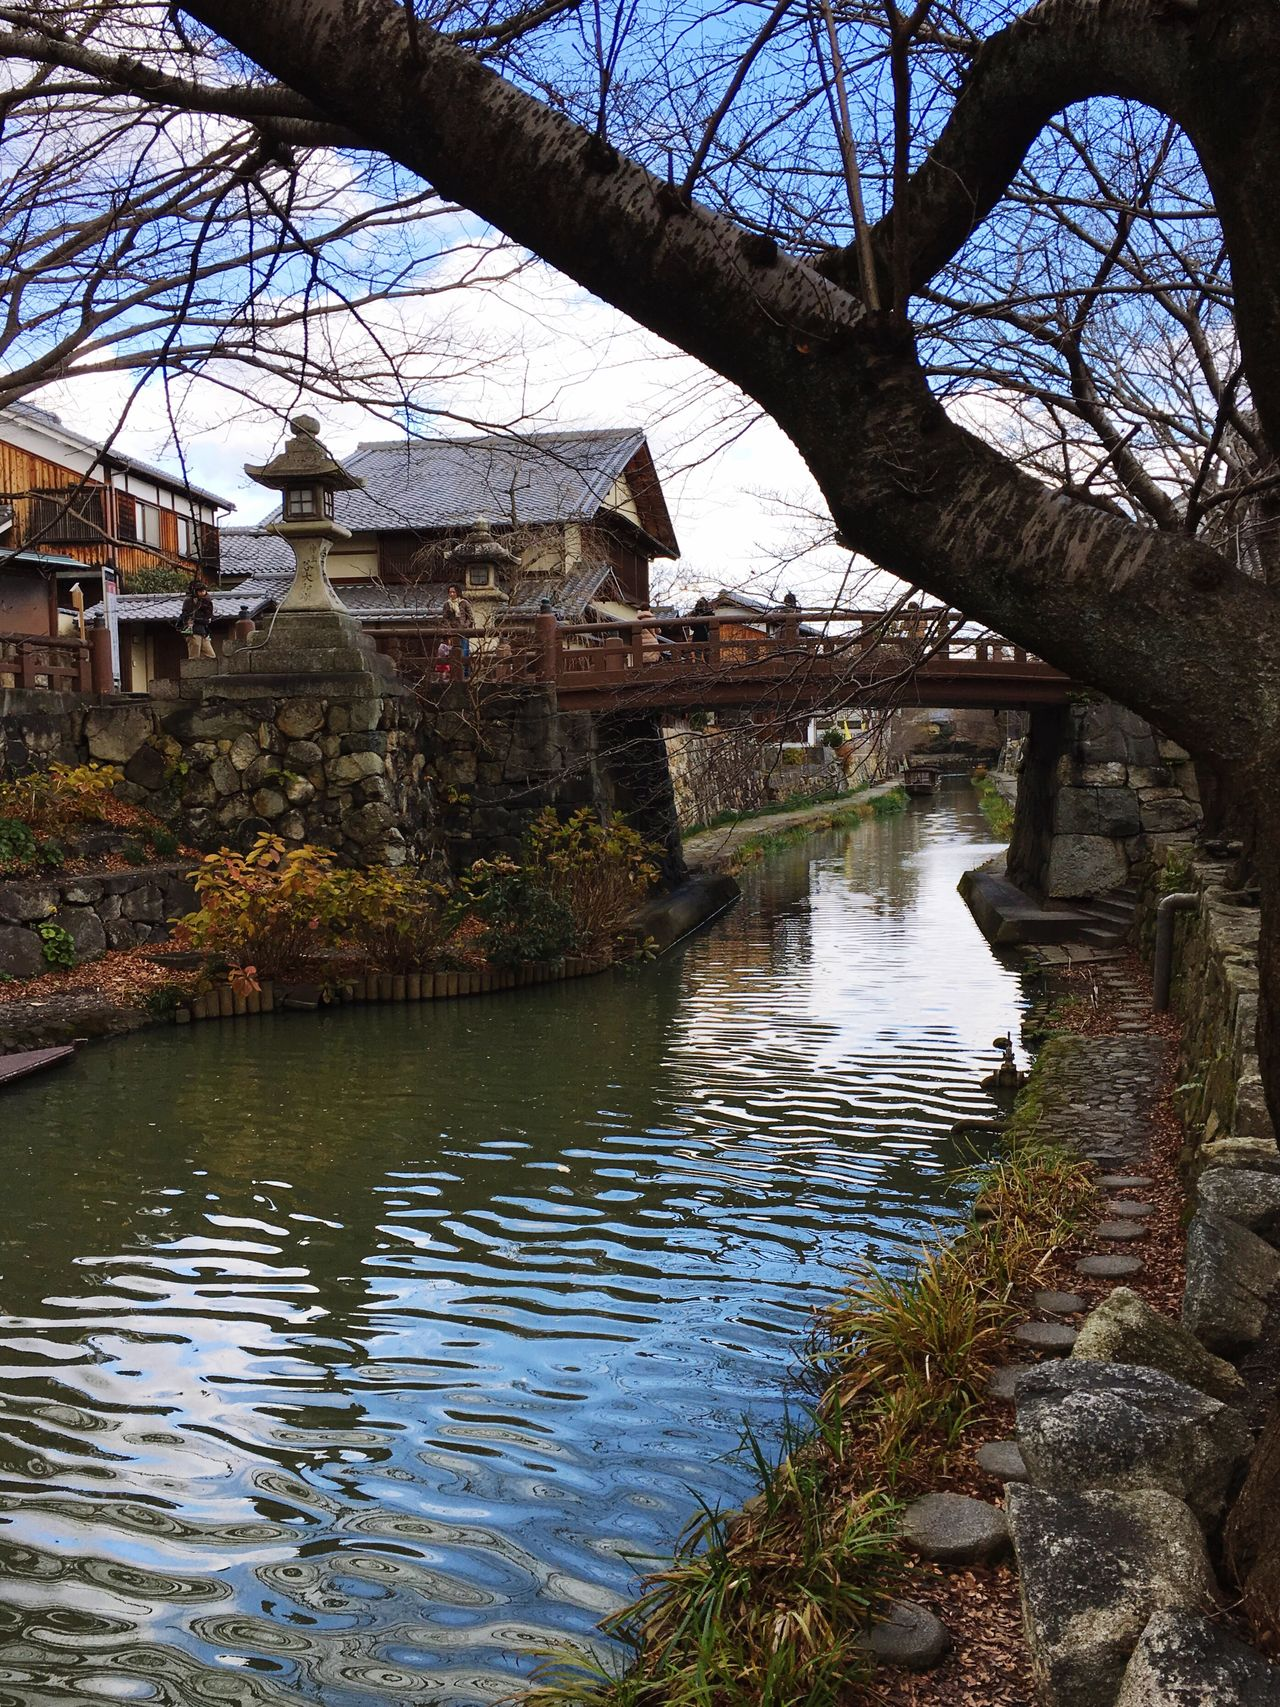 Travel Destinations Travel Photography Traveling Iphone6s IPhoneography Japan Ōmihachiman Canal Waterfront Old Houses Wooden House Bridge Tranquility Tranquil Scene 近江八幡